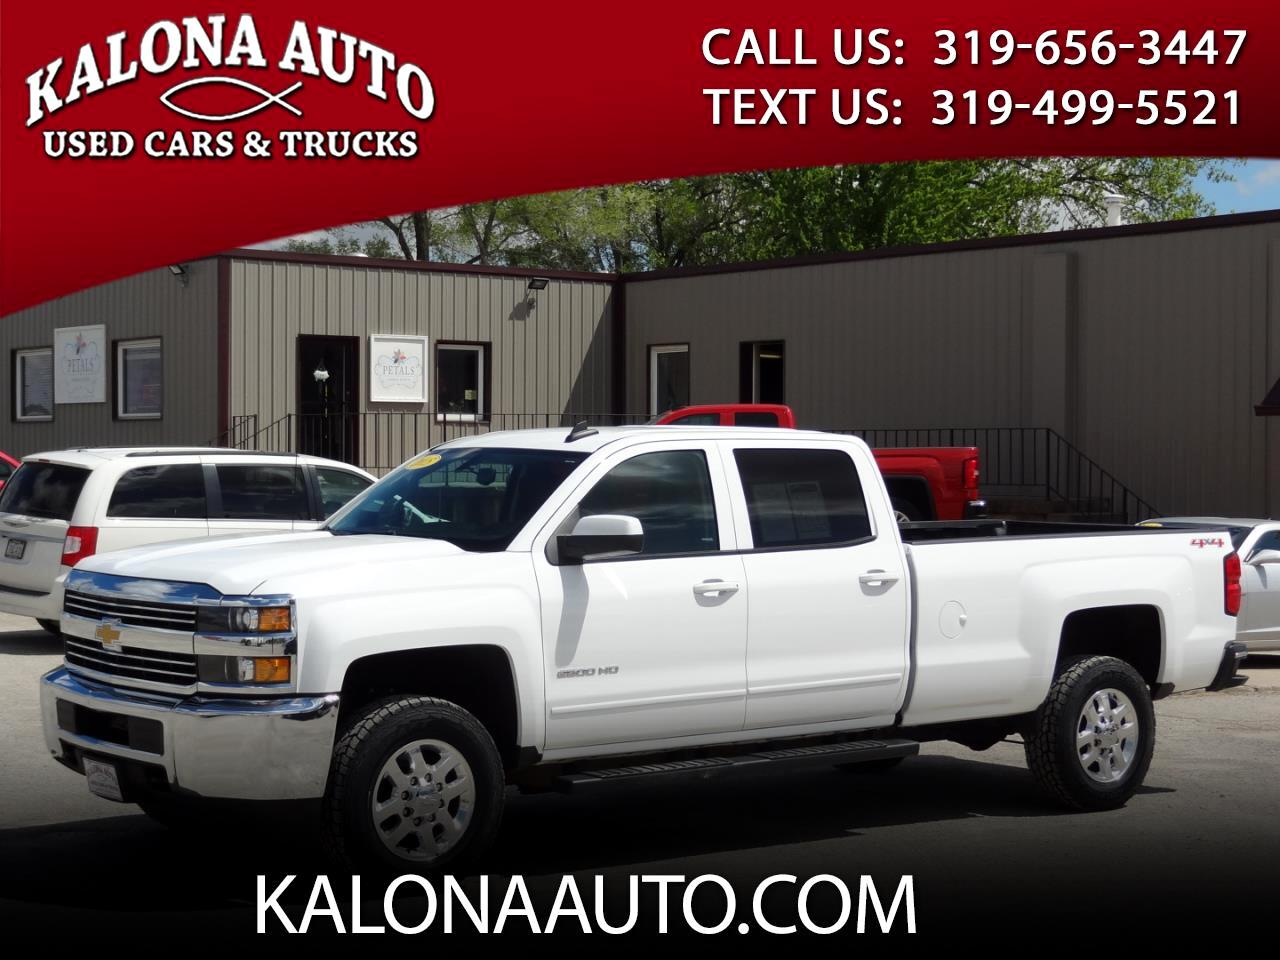 2015 Chevrolet Silverado 2500HD LT Crew Cab Long Bed 4WD